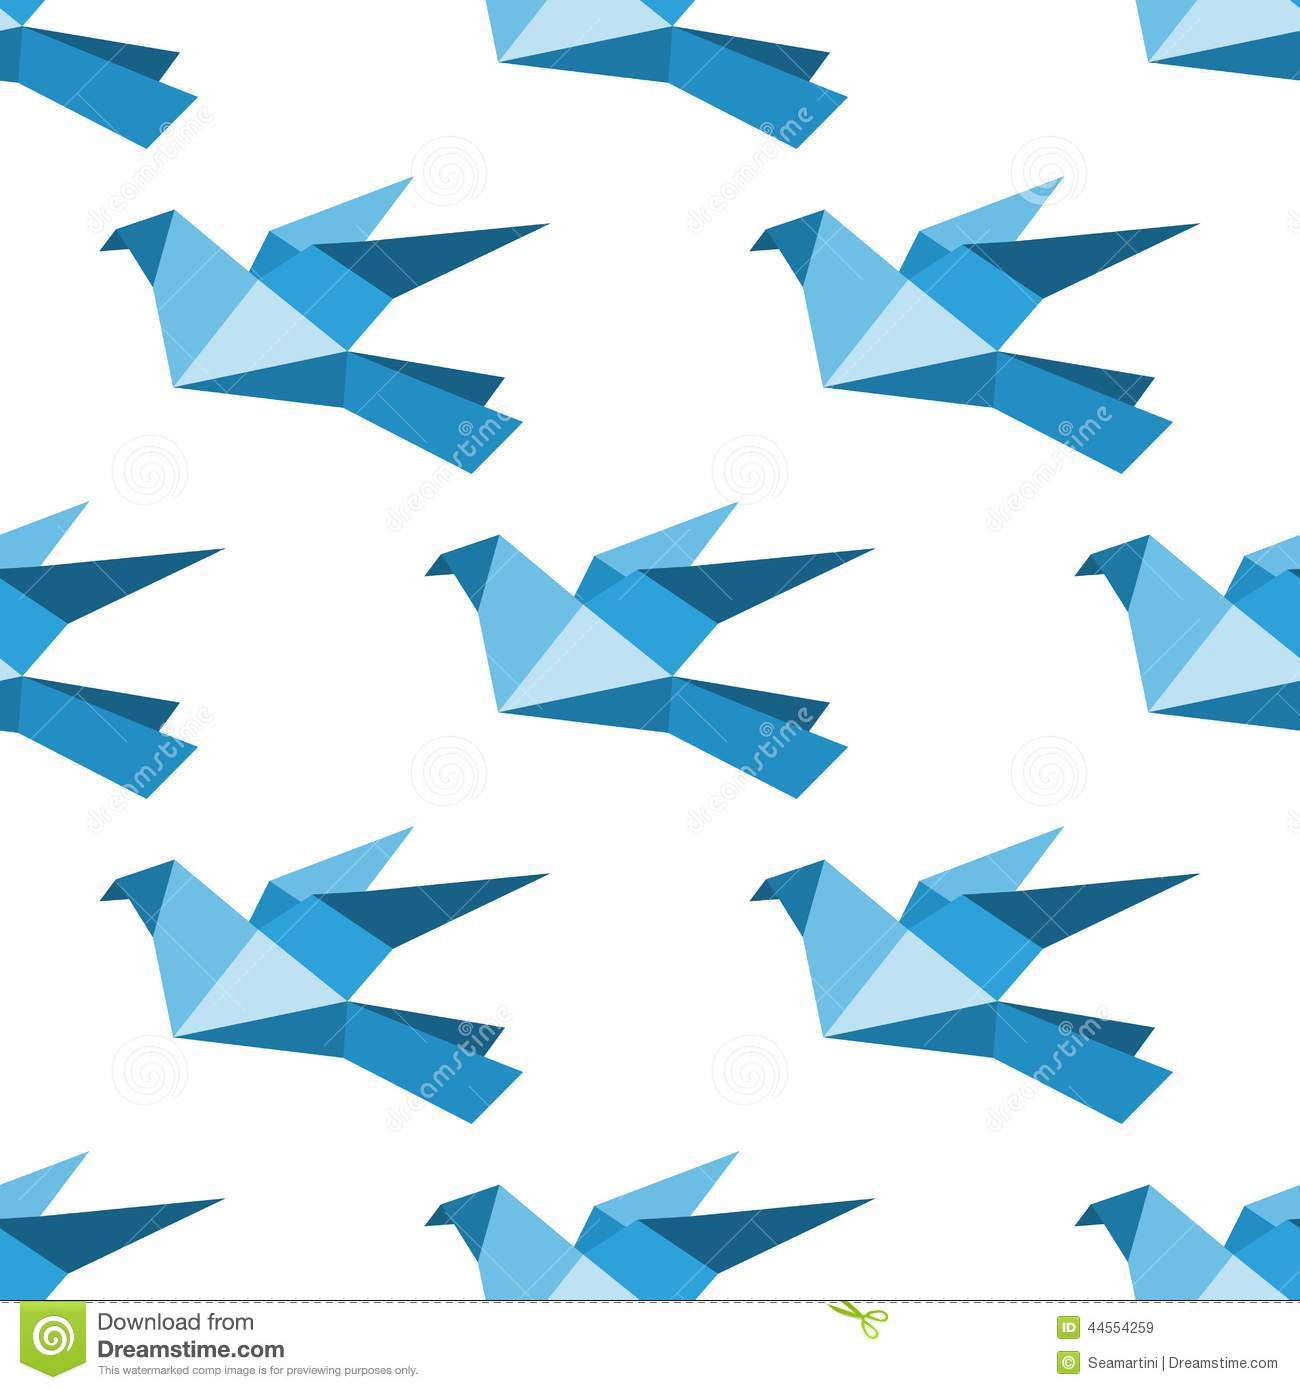 Origami Pigeons And Doves Seamless Pattern Stock Vector ... - photo#47